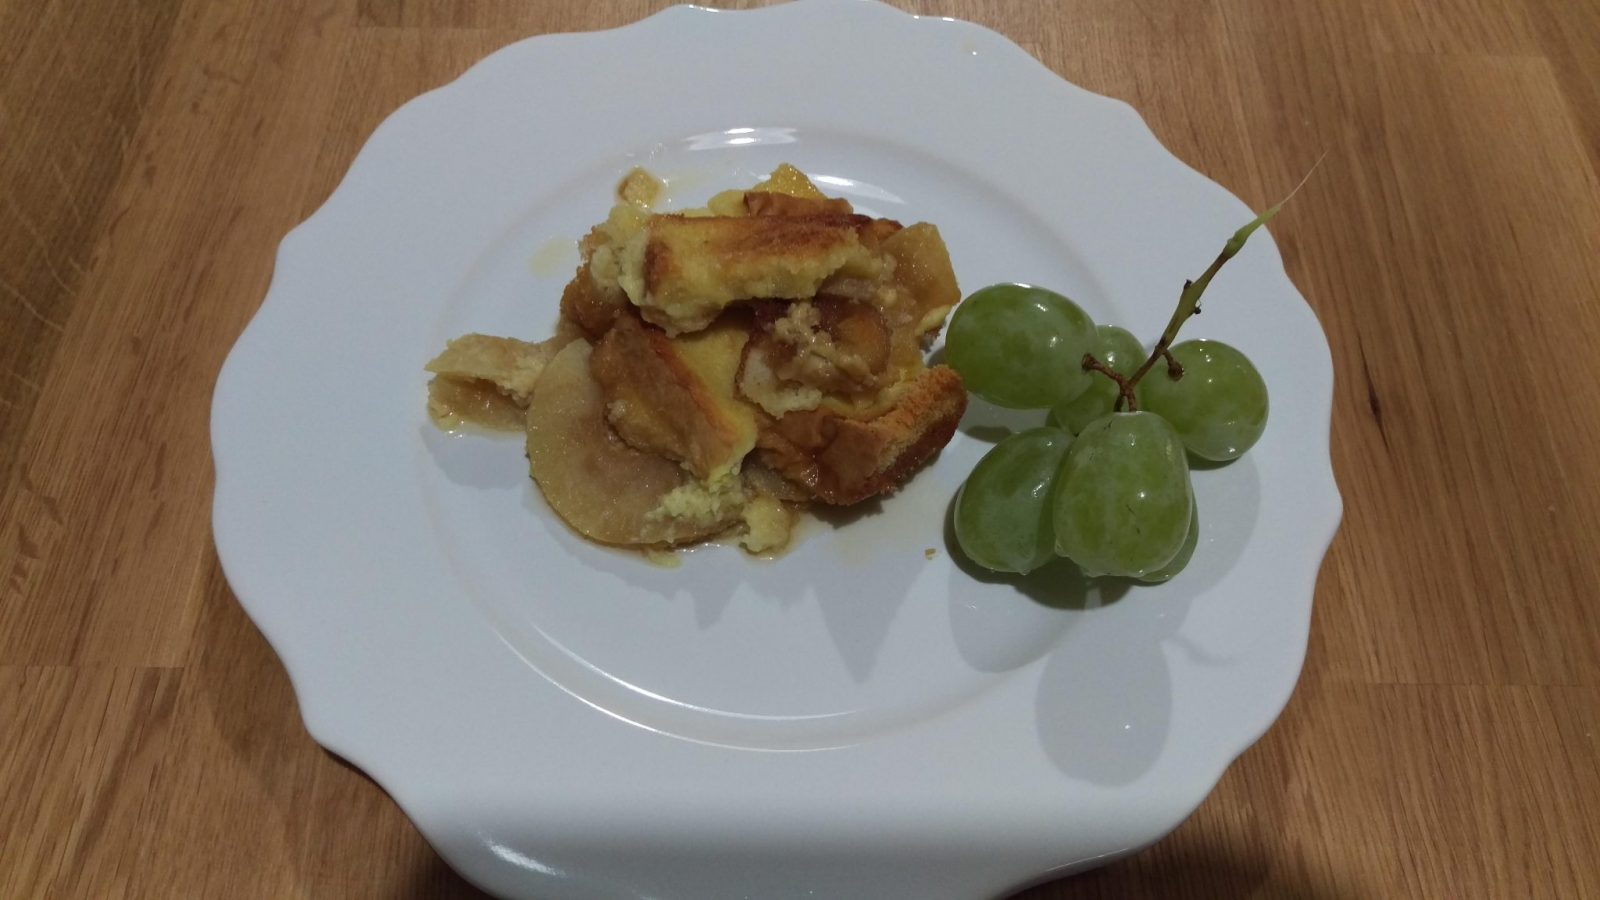 Picture of French toast casserole